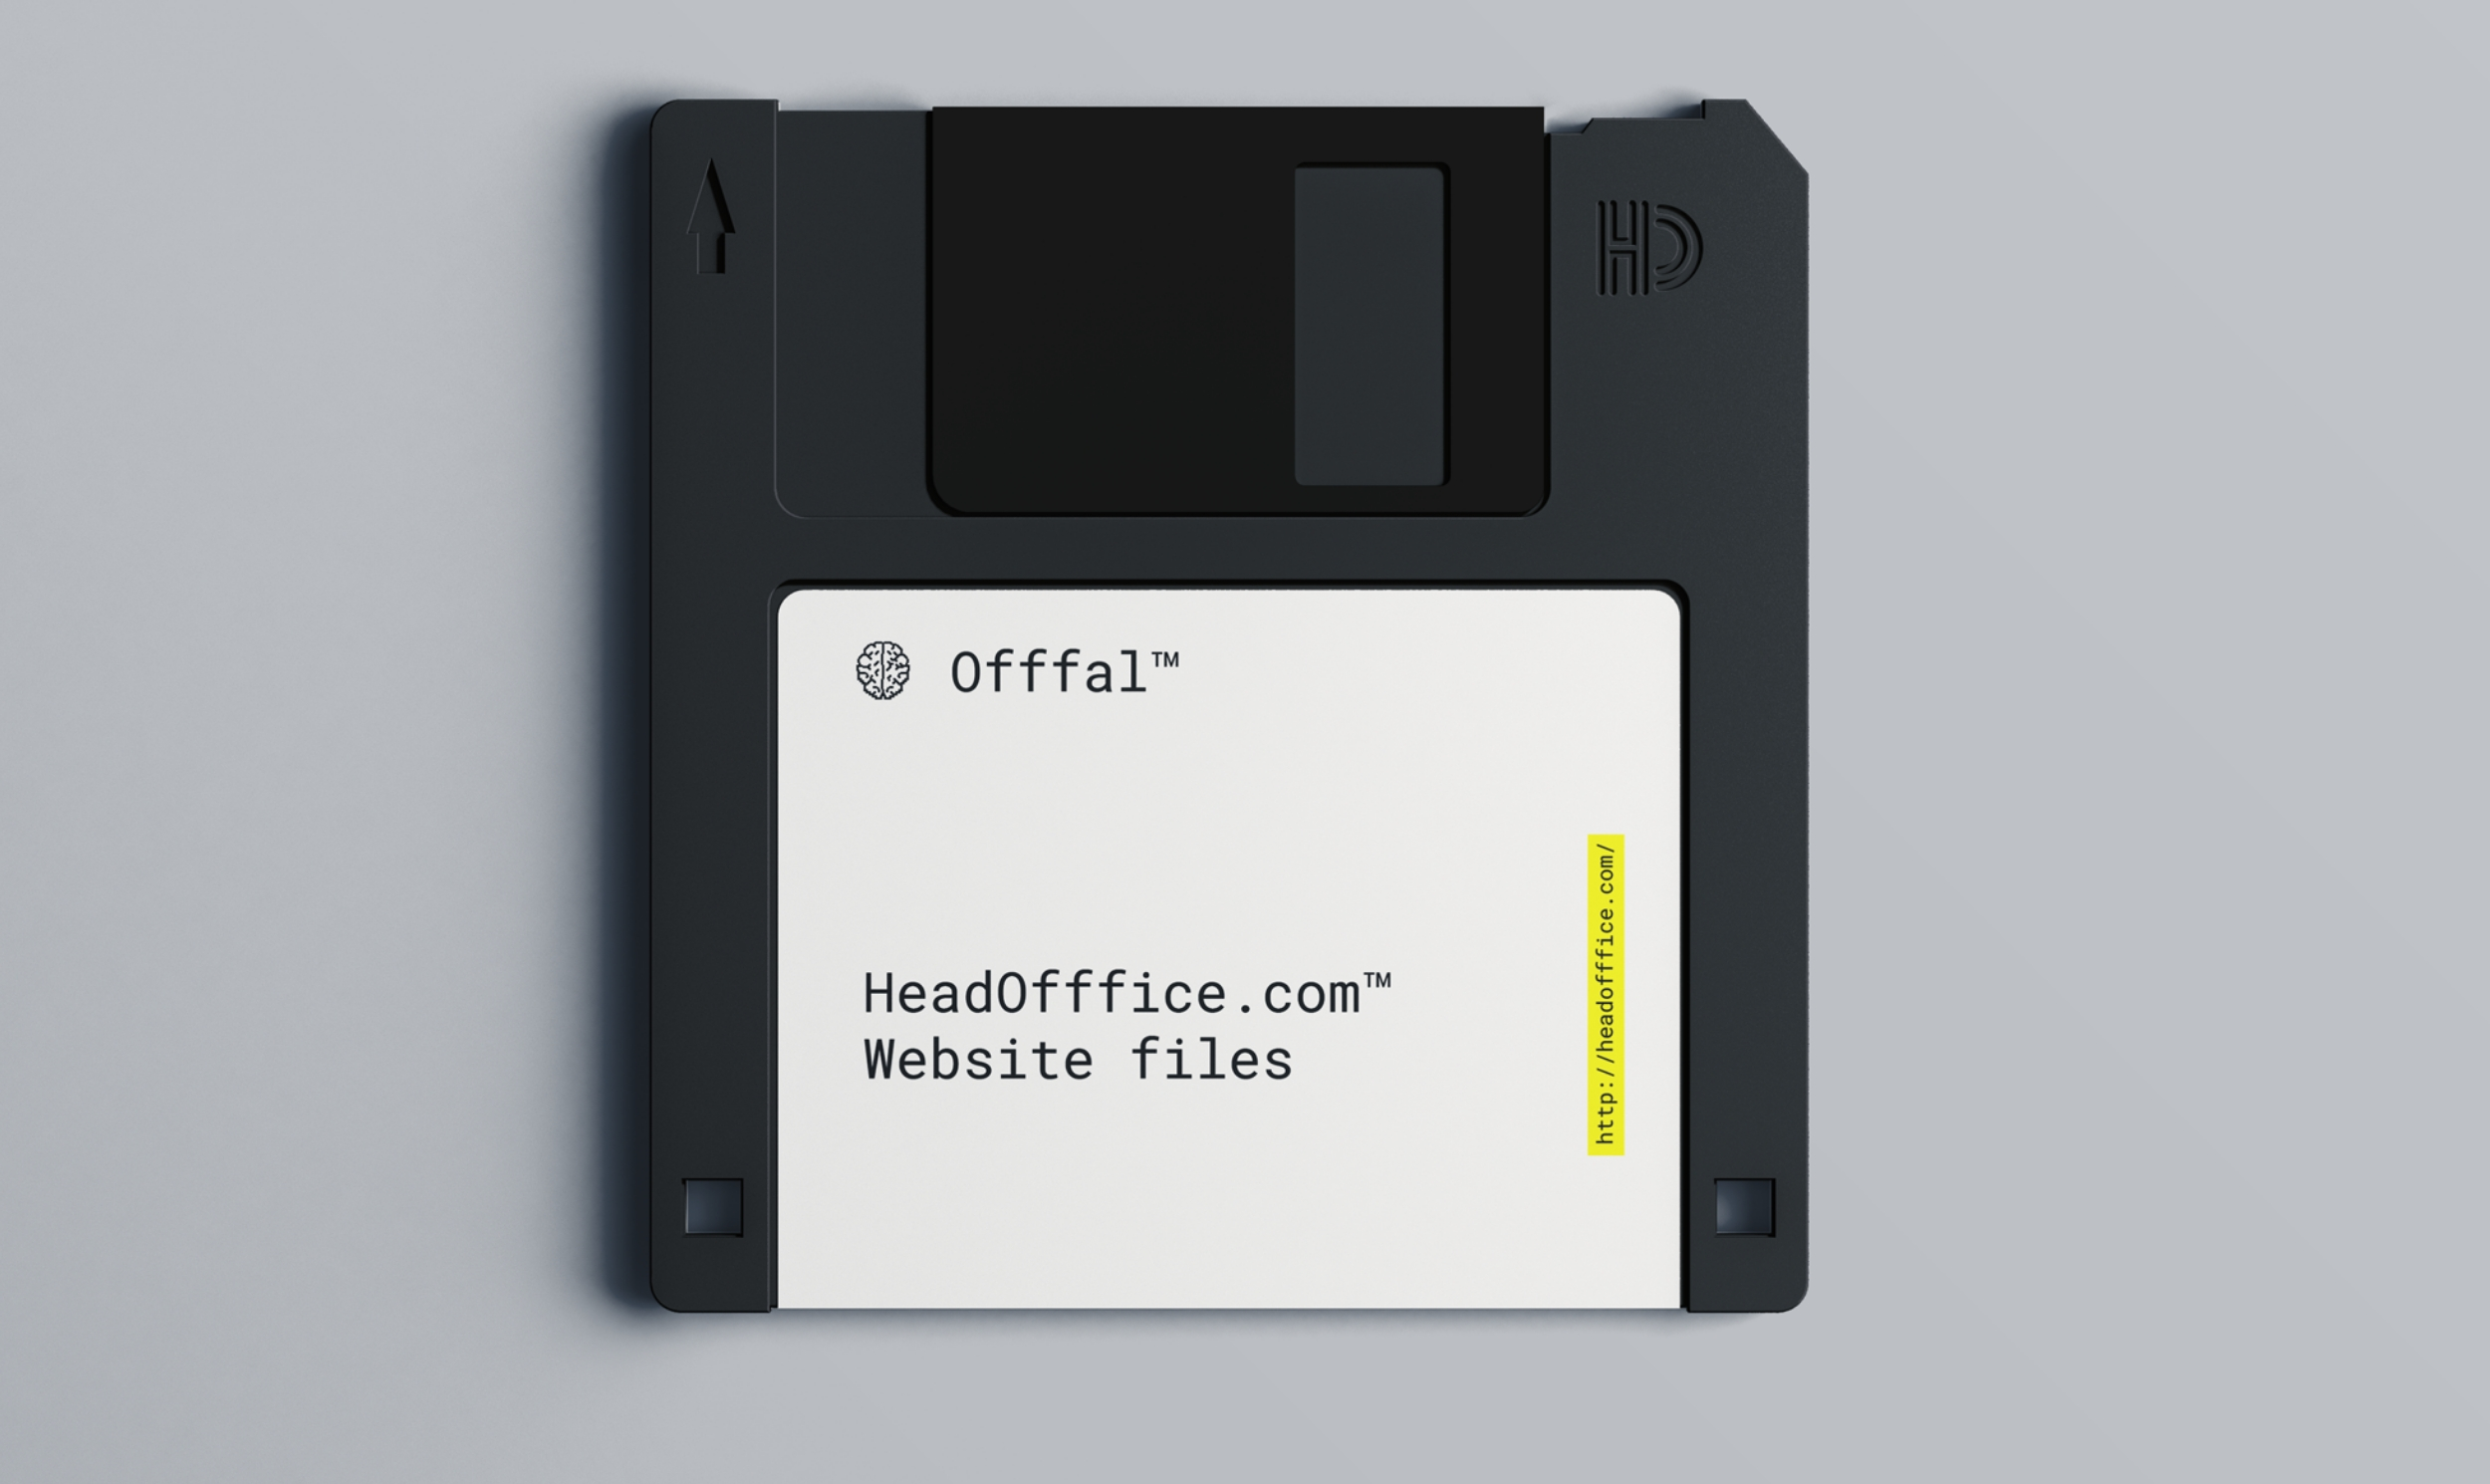 HeadOfffice Leeds Agency design social and branding. Floppy disk and funky operating system by Gaz Battersby